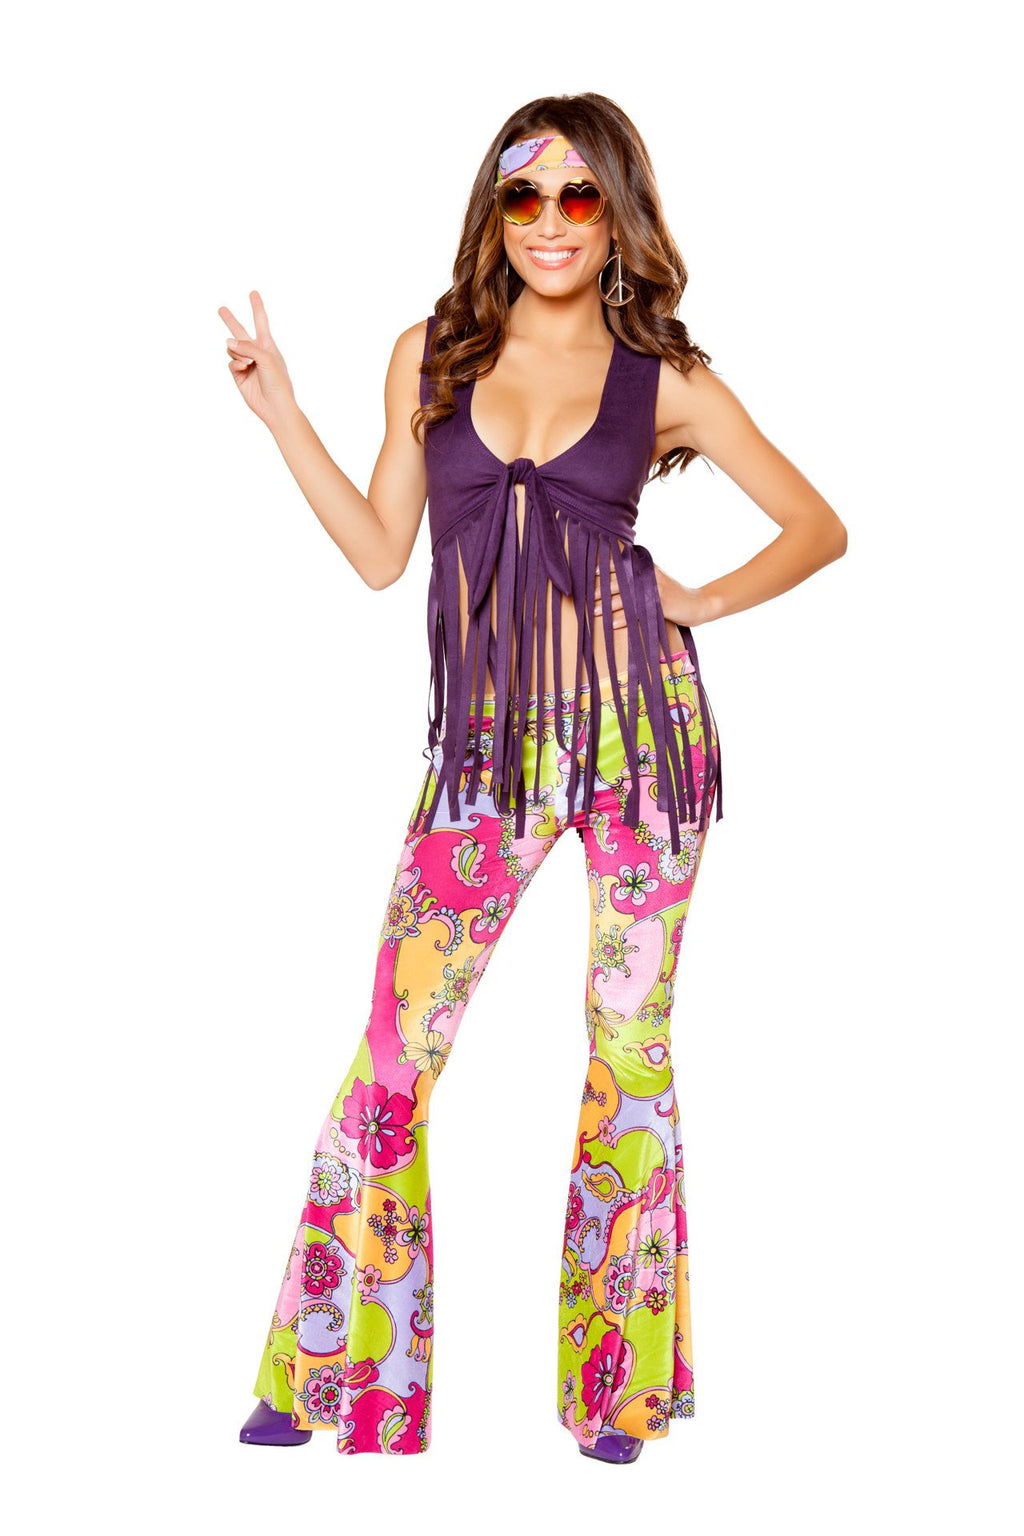 3pc Hippie Lover - PlaythingsMiami